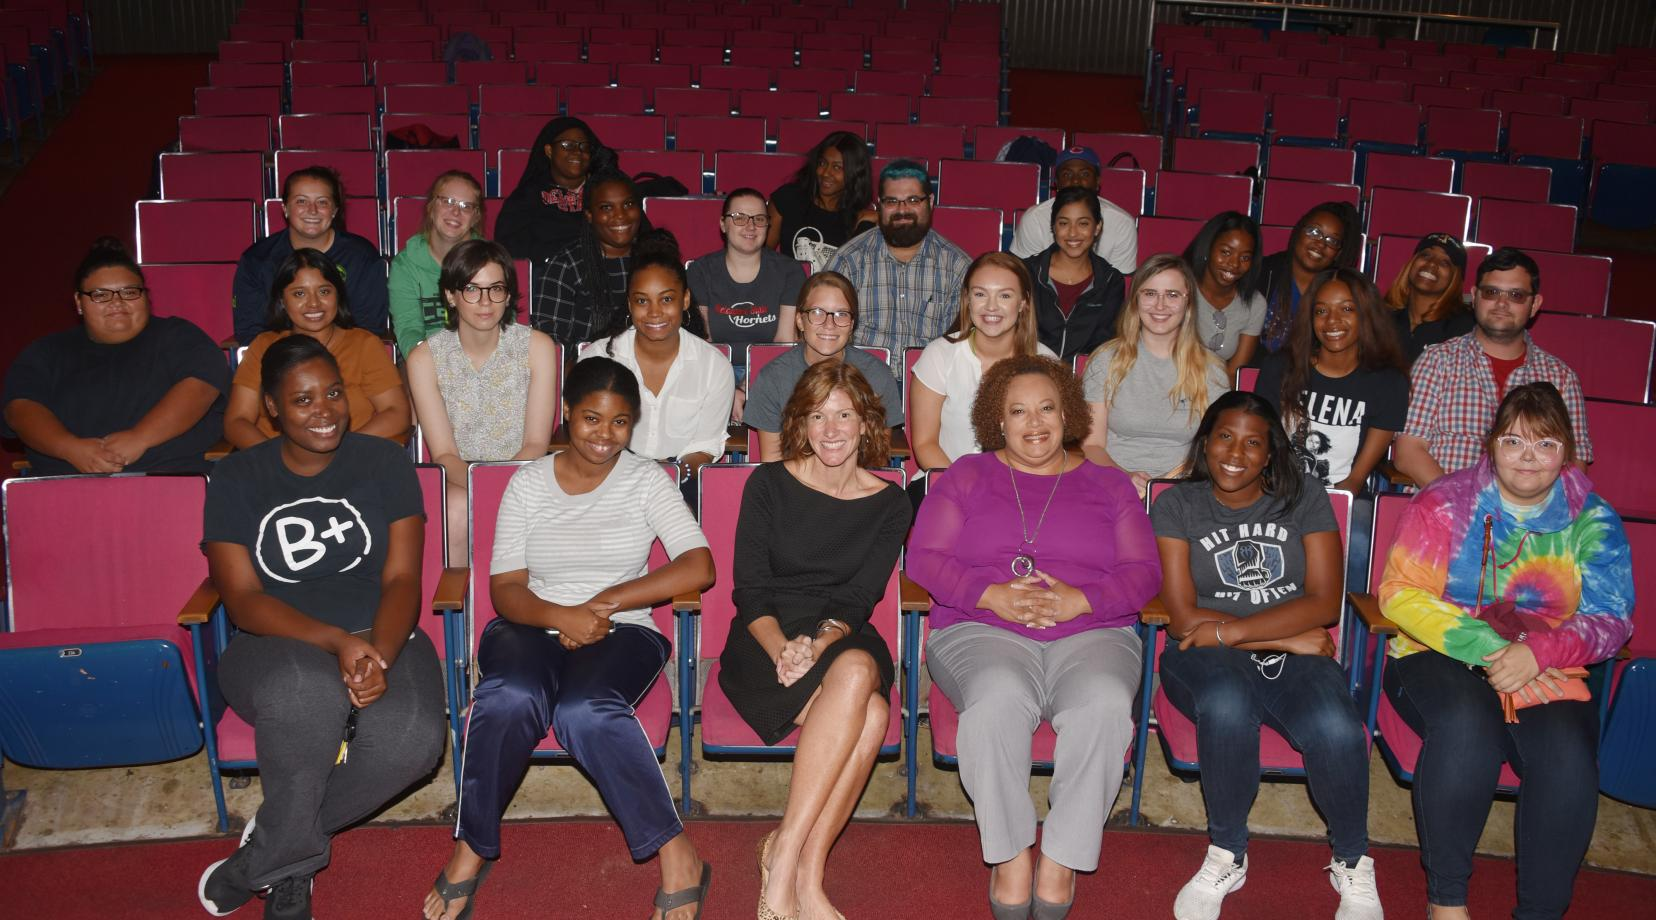 <p>Dana Bowe (center front, black dress), 2019 Delaware Teacher of the Year, seated next to Dr. Crystal Timmons, director of Clinical and Field Experiences, poses with the education majors she shared her teaching experiences with on Sept. 25 in the Education and Humanities Theatre.</p>